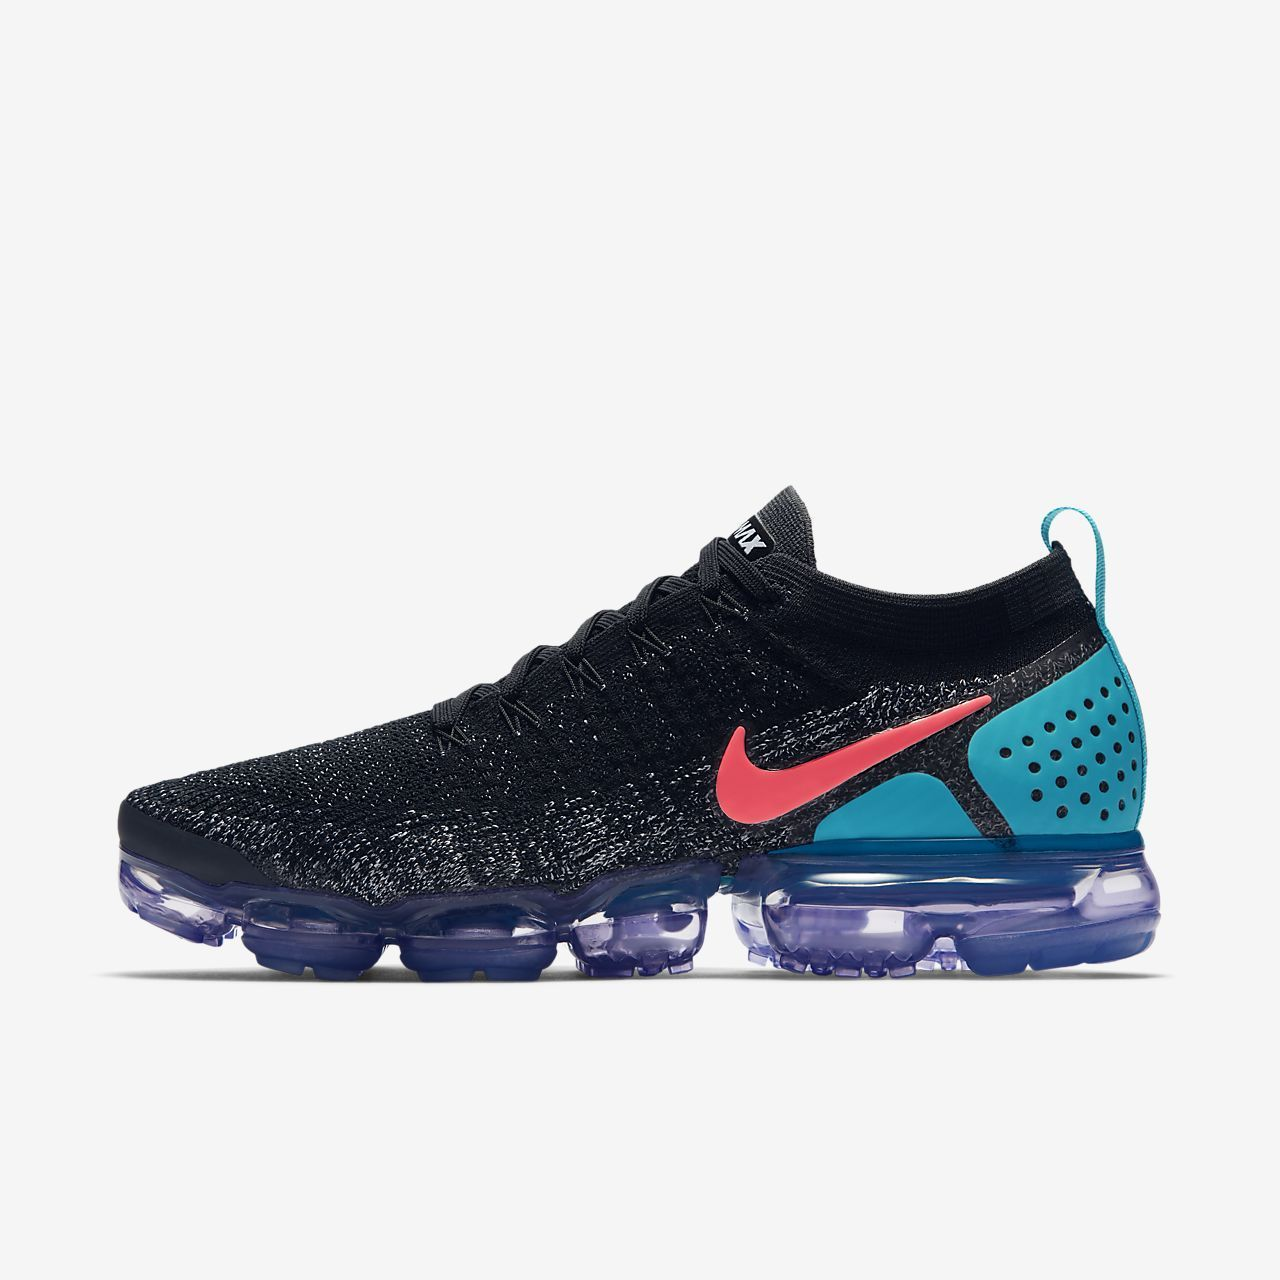 b361bfe5a6a32 Mens Nike Air VaporMax Flyknit 2 Running Shoe Black White Dusty Cactus Hot  Punch Style  942842-003